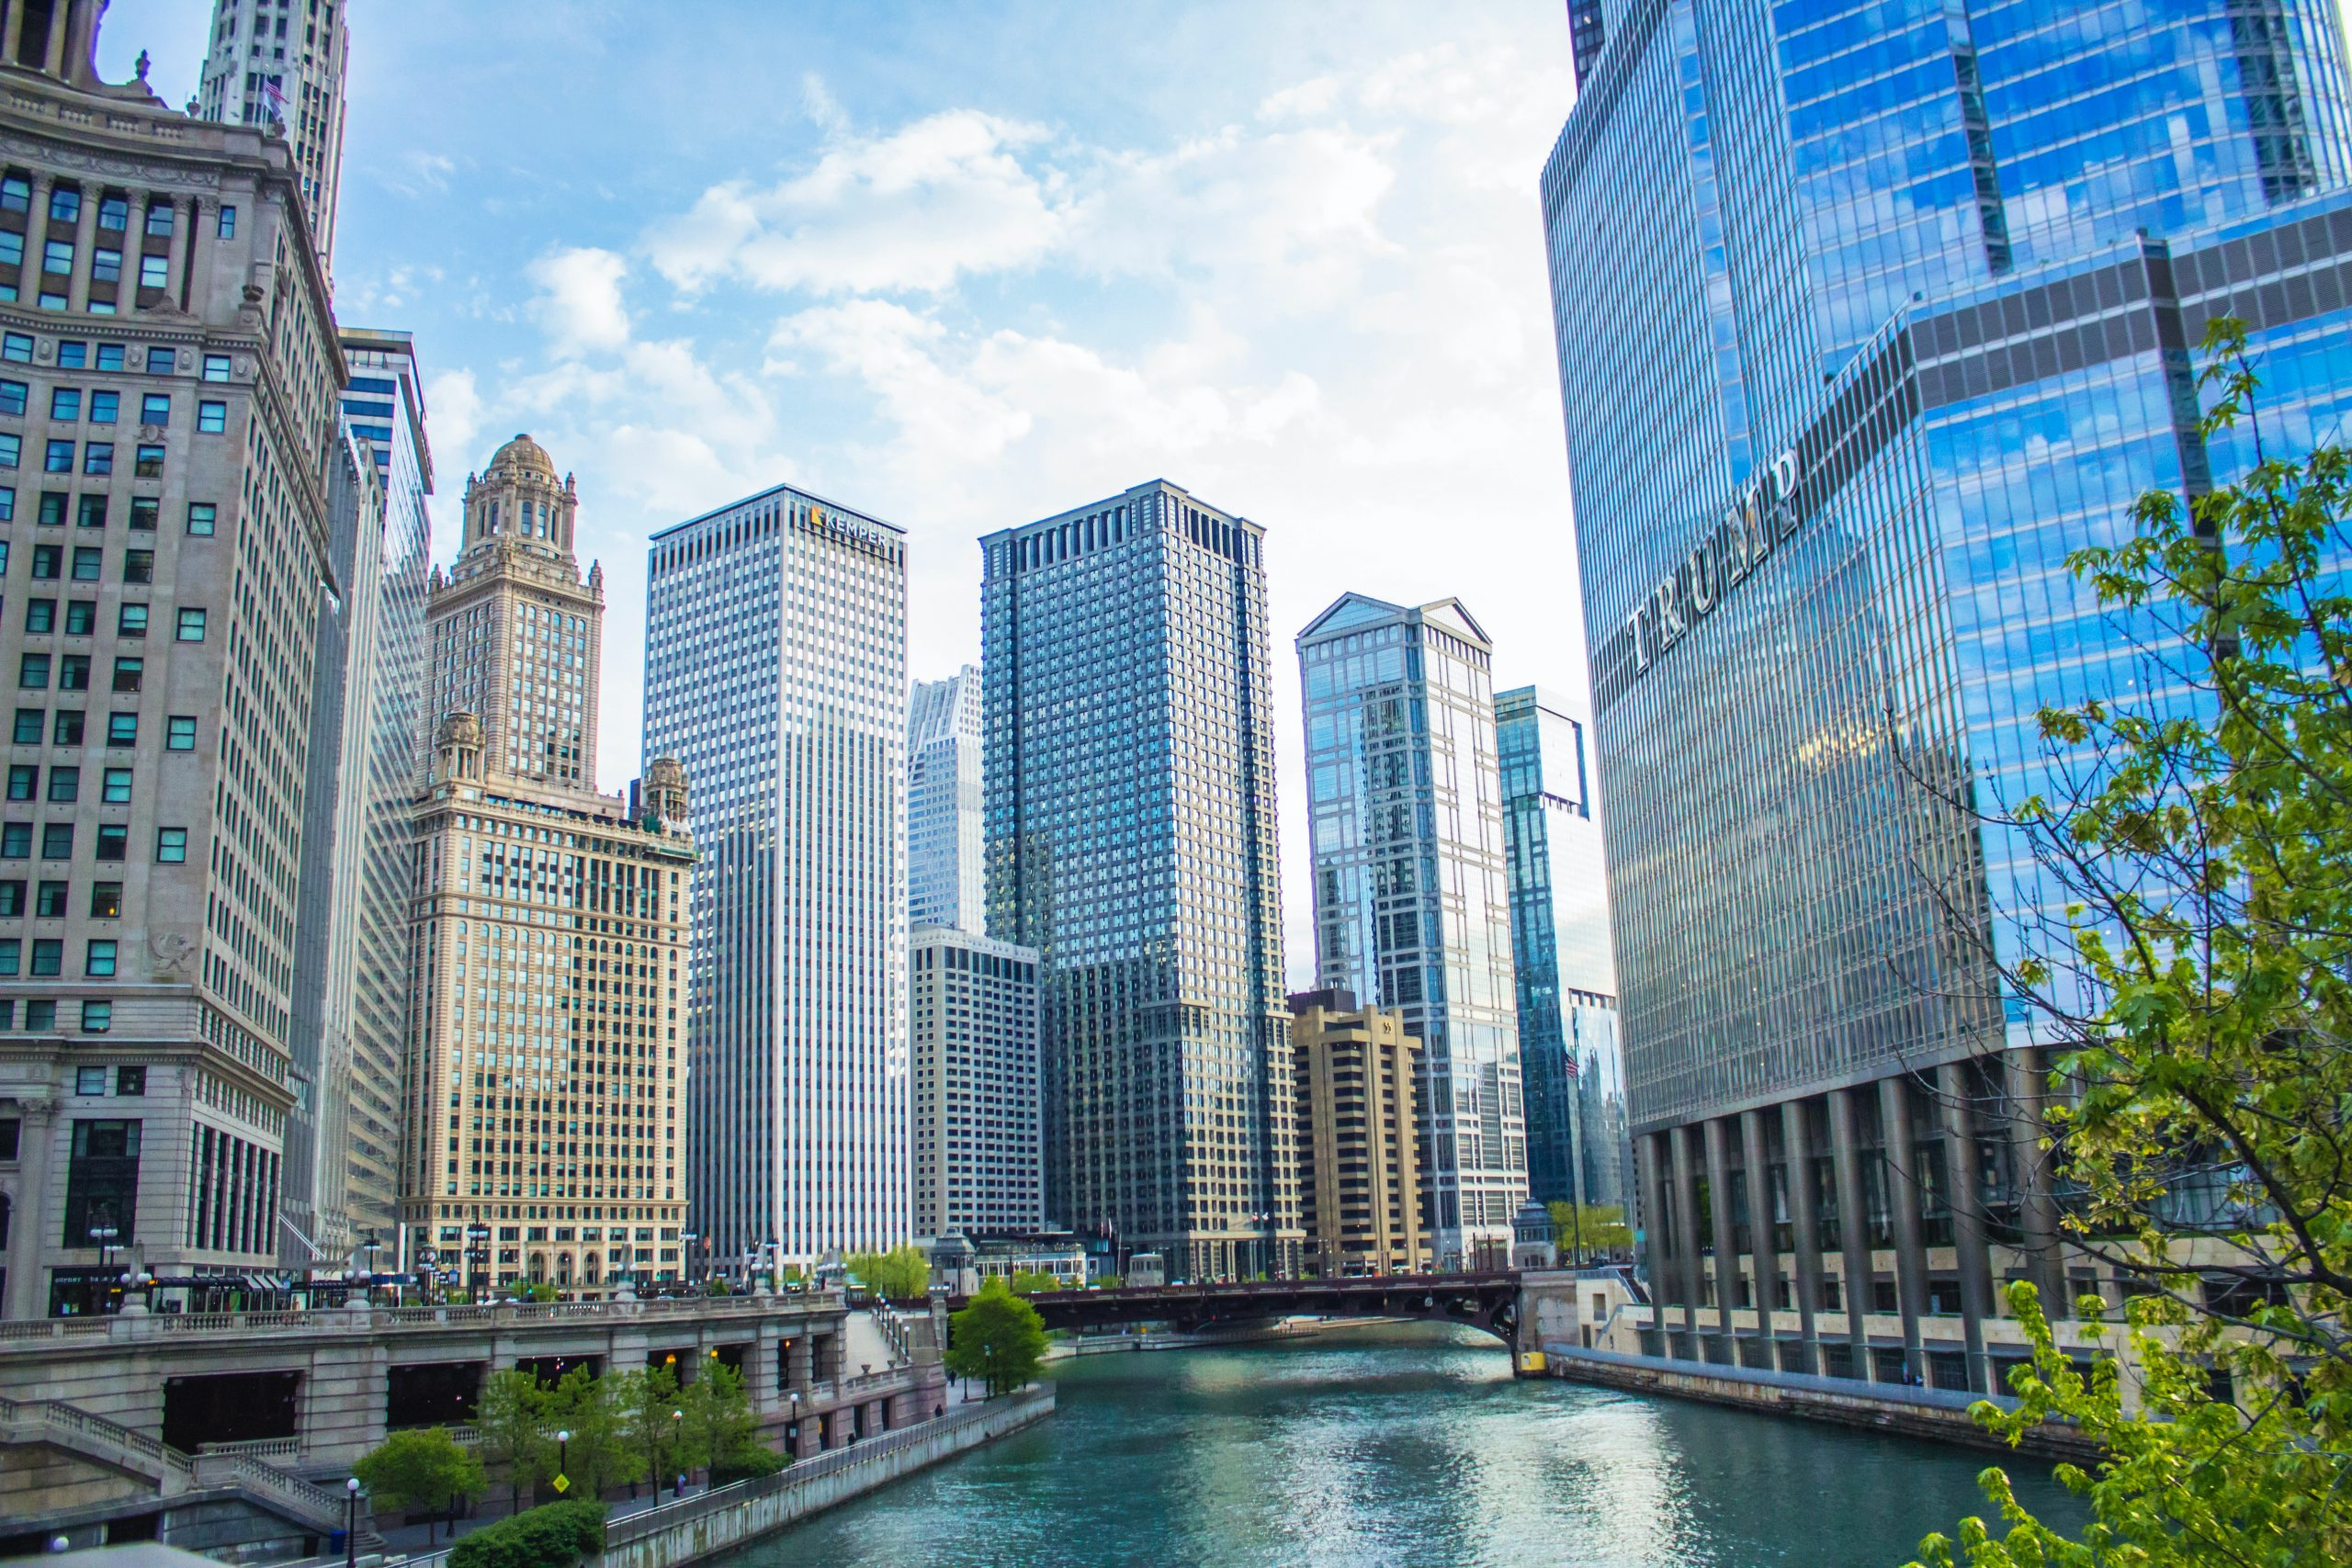 Photo of downtown Chicago's outdoor attraction the Riverwalk and its surrounding buildings